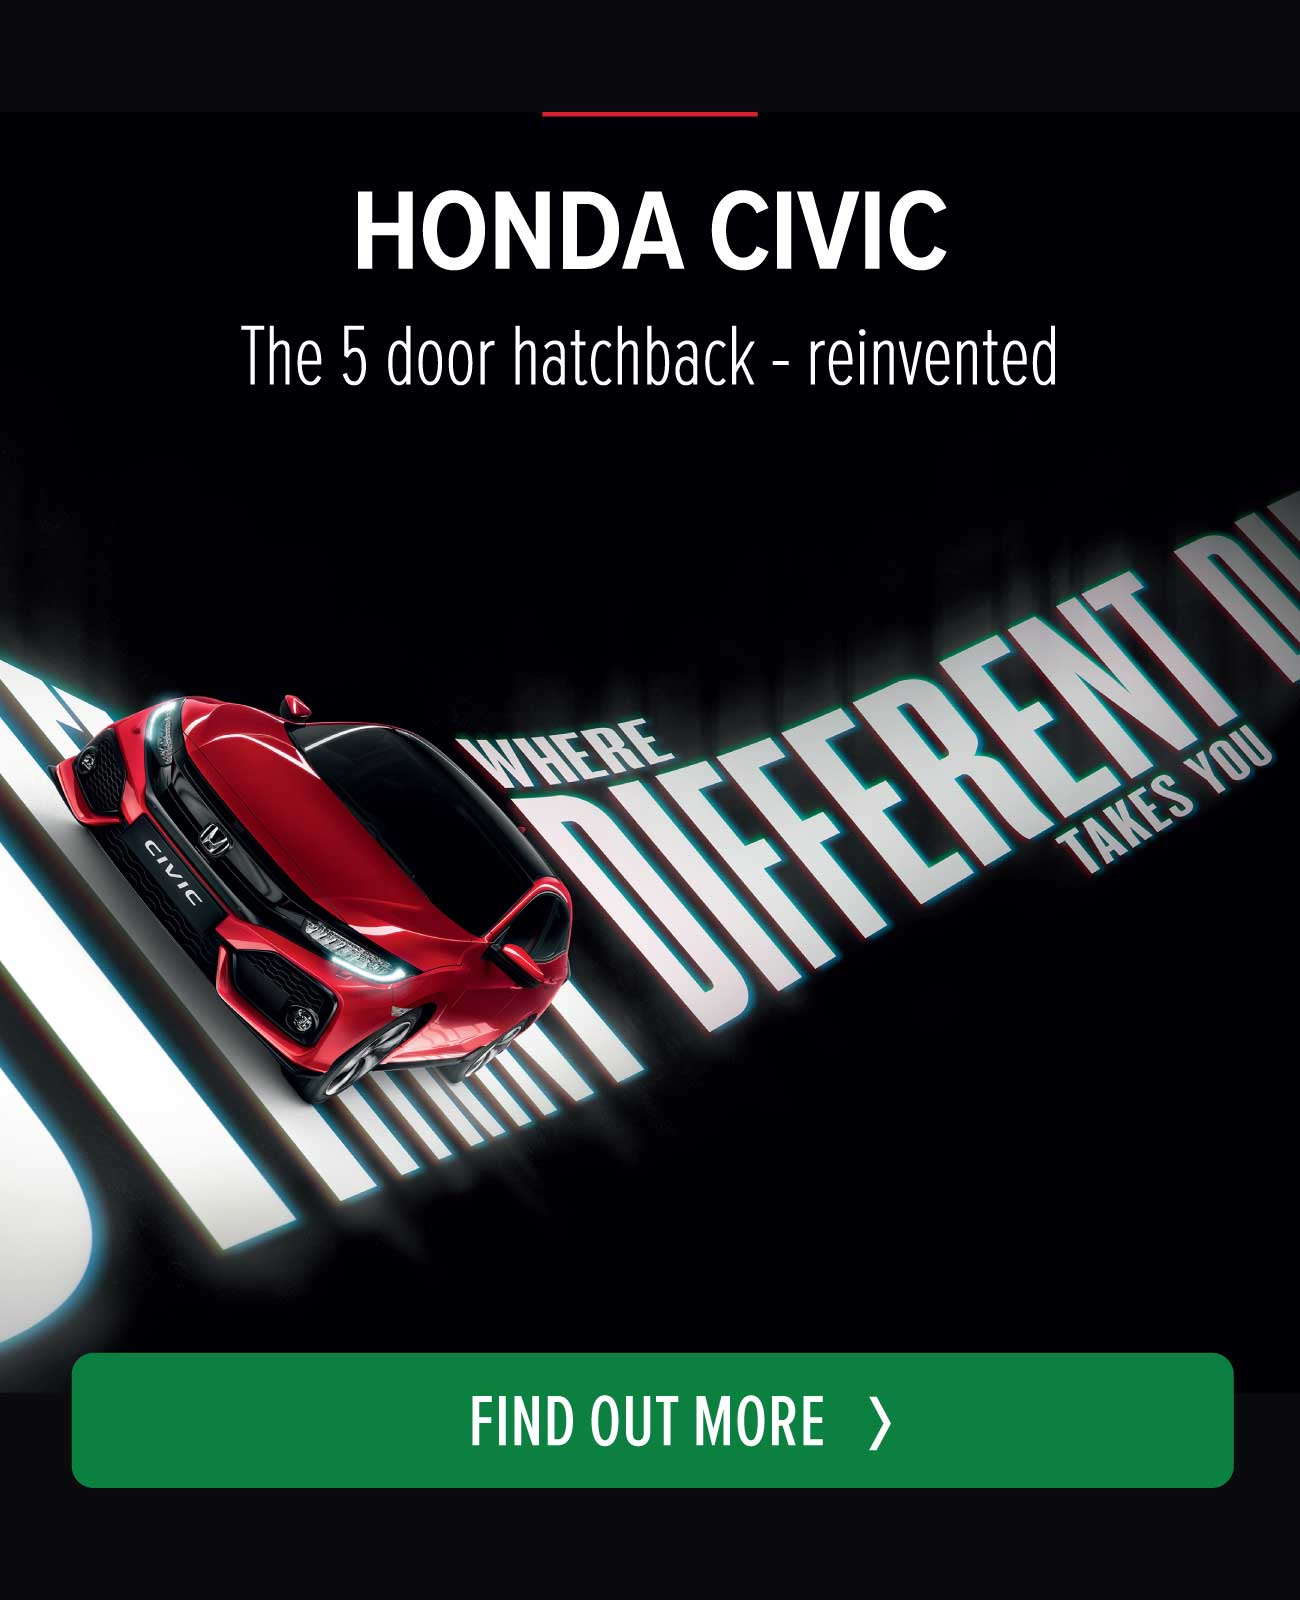 Honda Civic Where Different Takes you